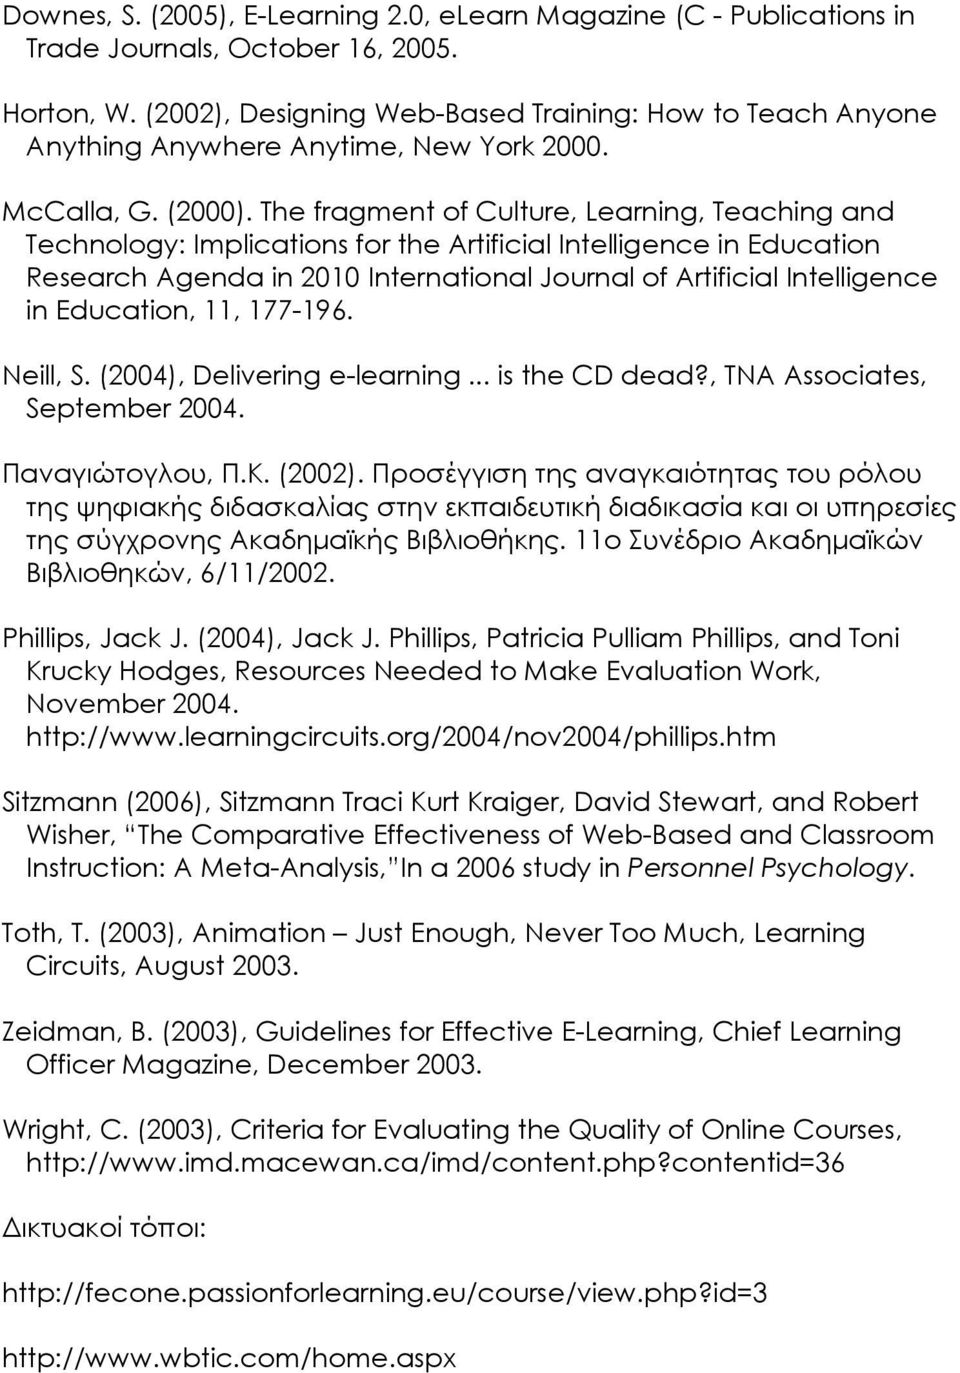 The fragment of Culture, Learning, Teaching and Technology: Implications for the Artificial Intelligence in Education Research Agenda in 2010 International Journal of Artificial Intelligence in